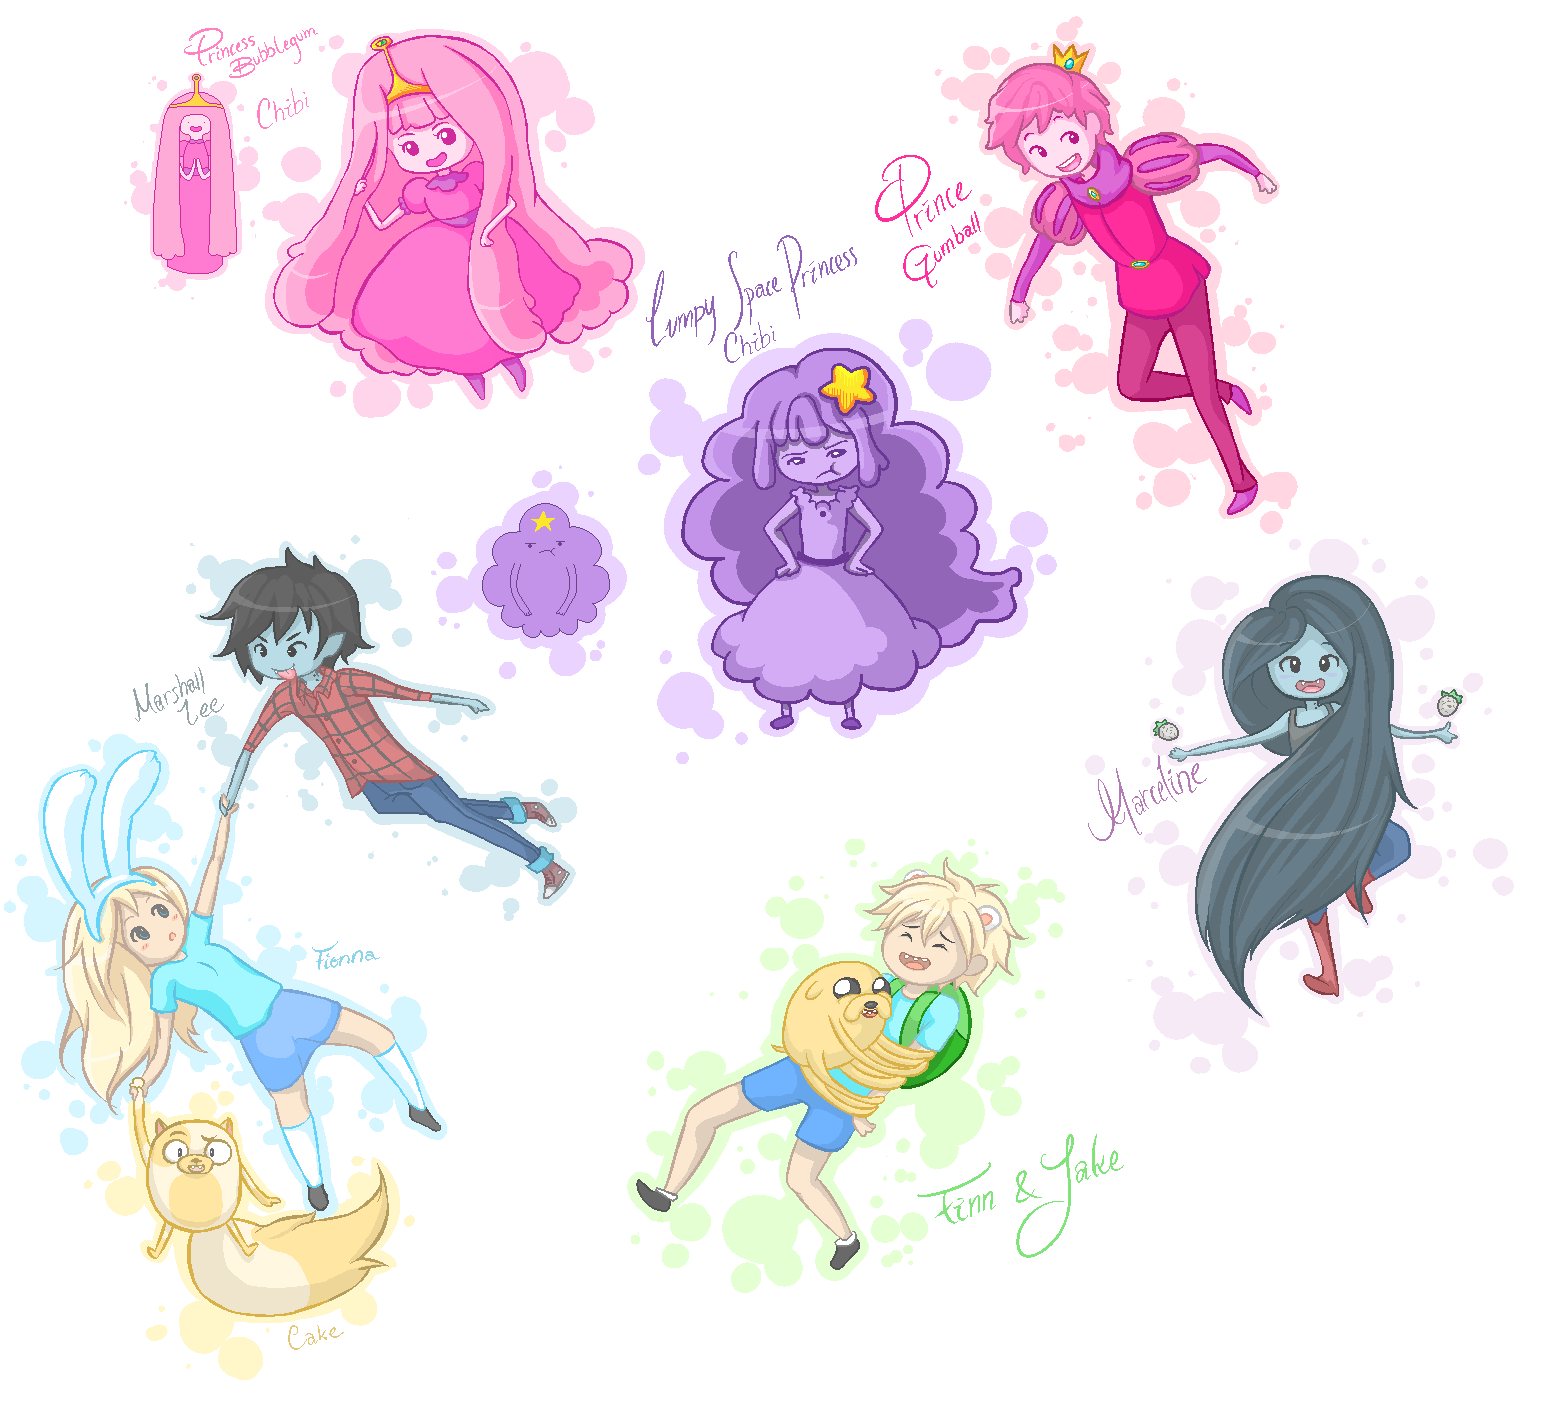 Adventure time characters by Sabinaa